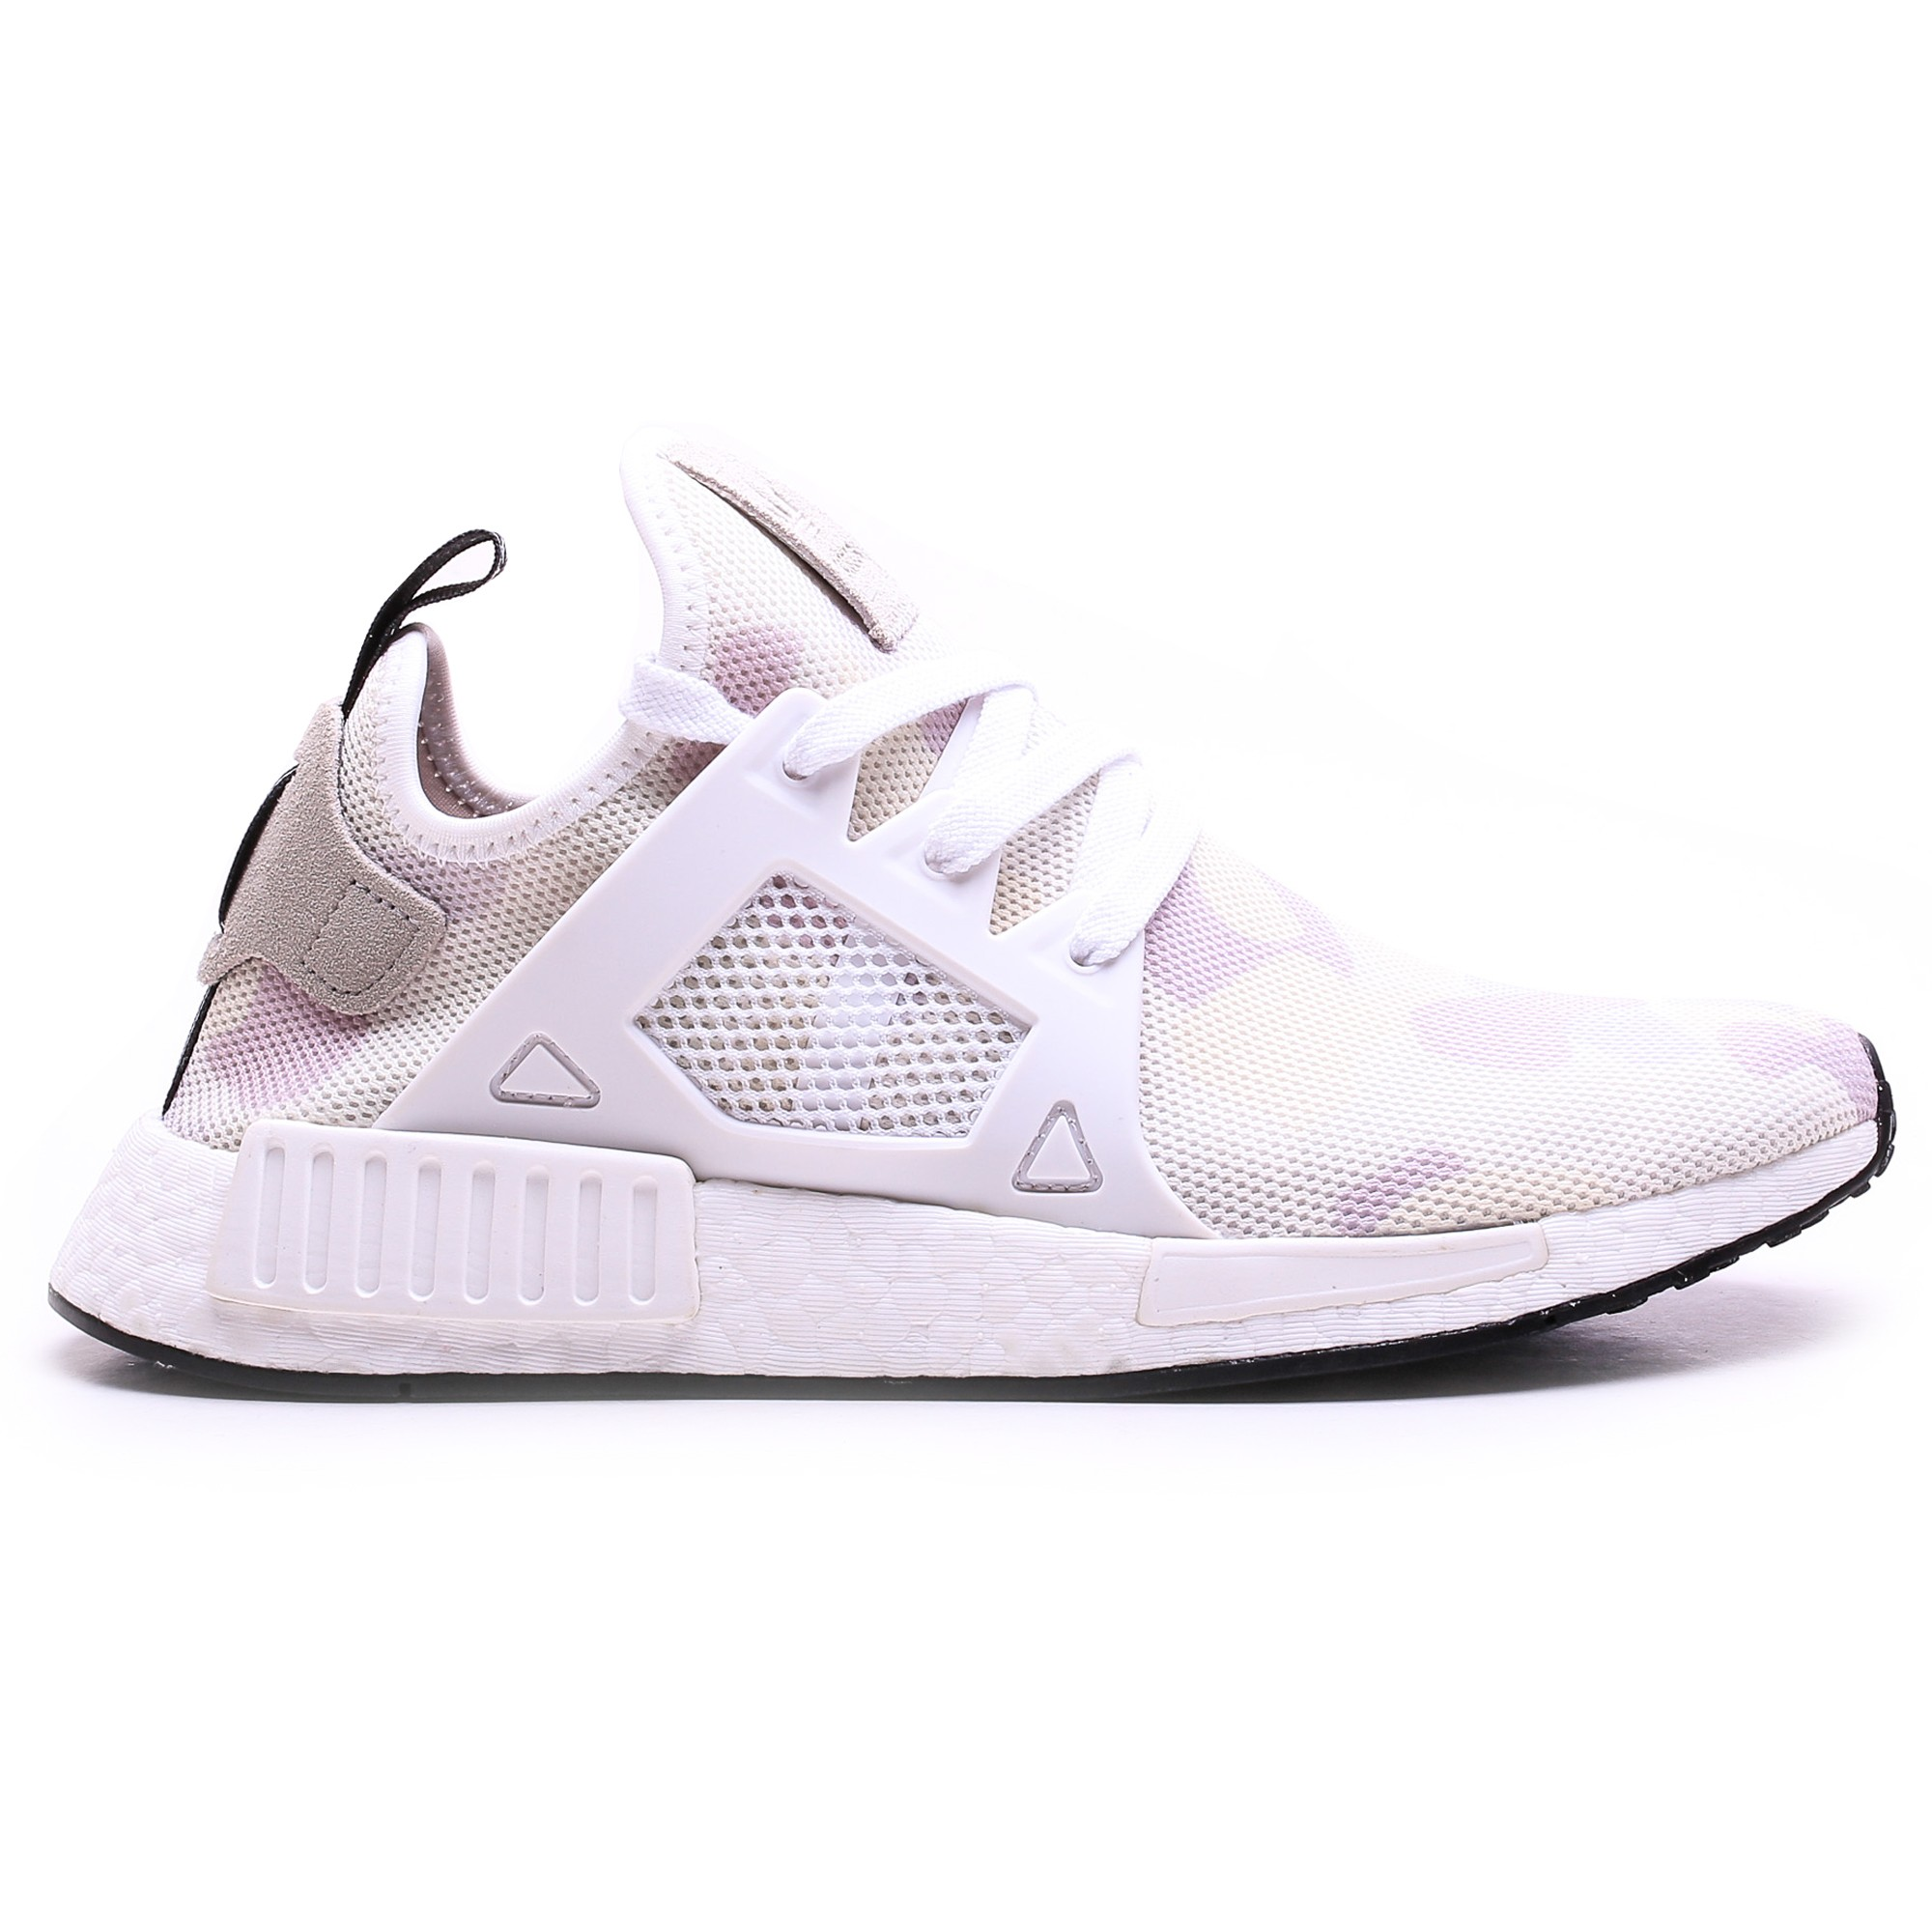 371430d4c Adidas NMD XR1 W Triple White BB3684 US Women Amazon